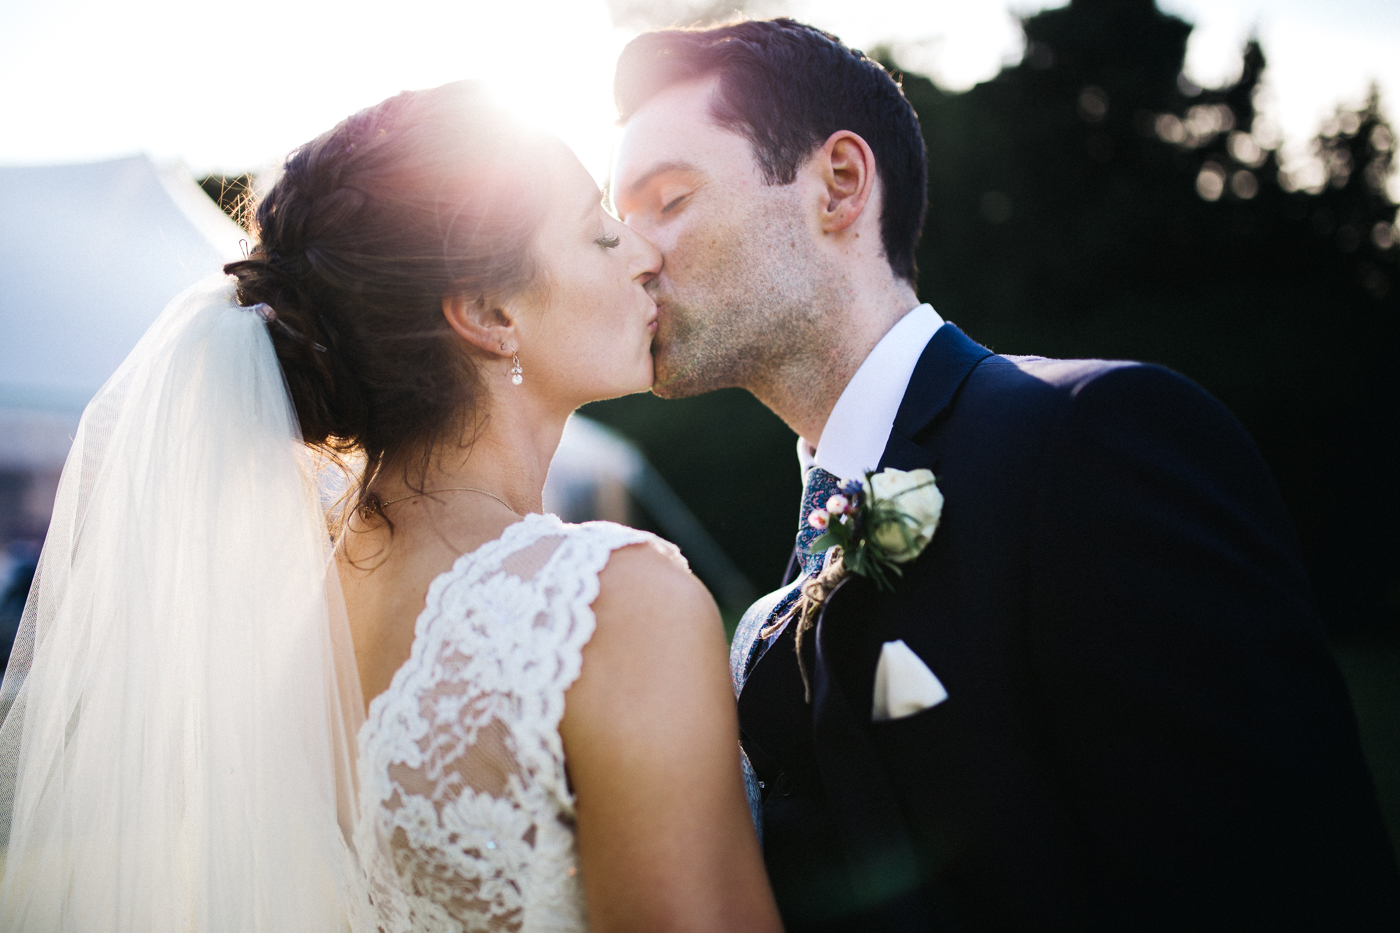 a bride and groom kiss. aldby park wedding york north yorkshire teesside photography stop motion wedding films uk